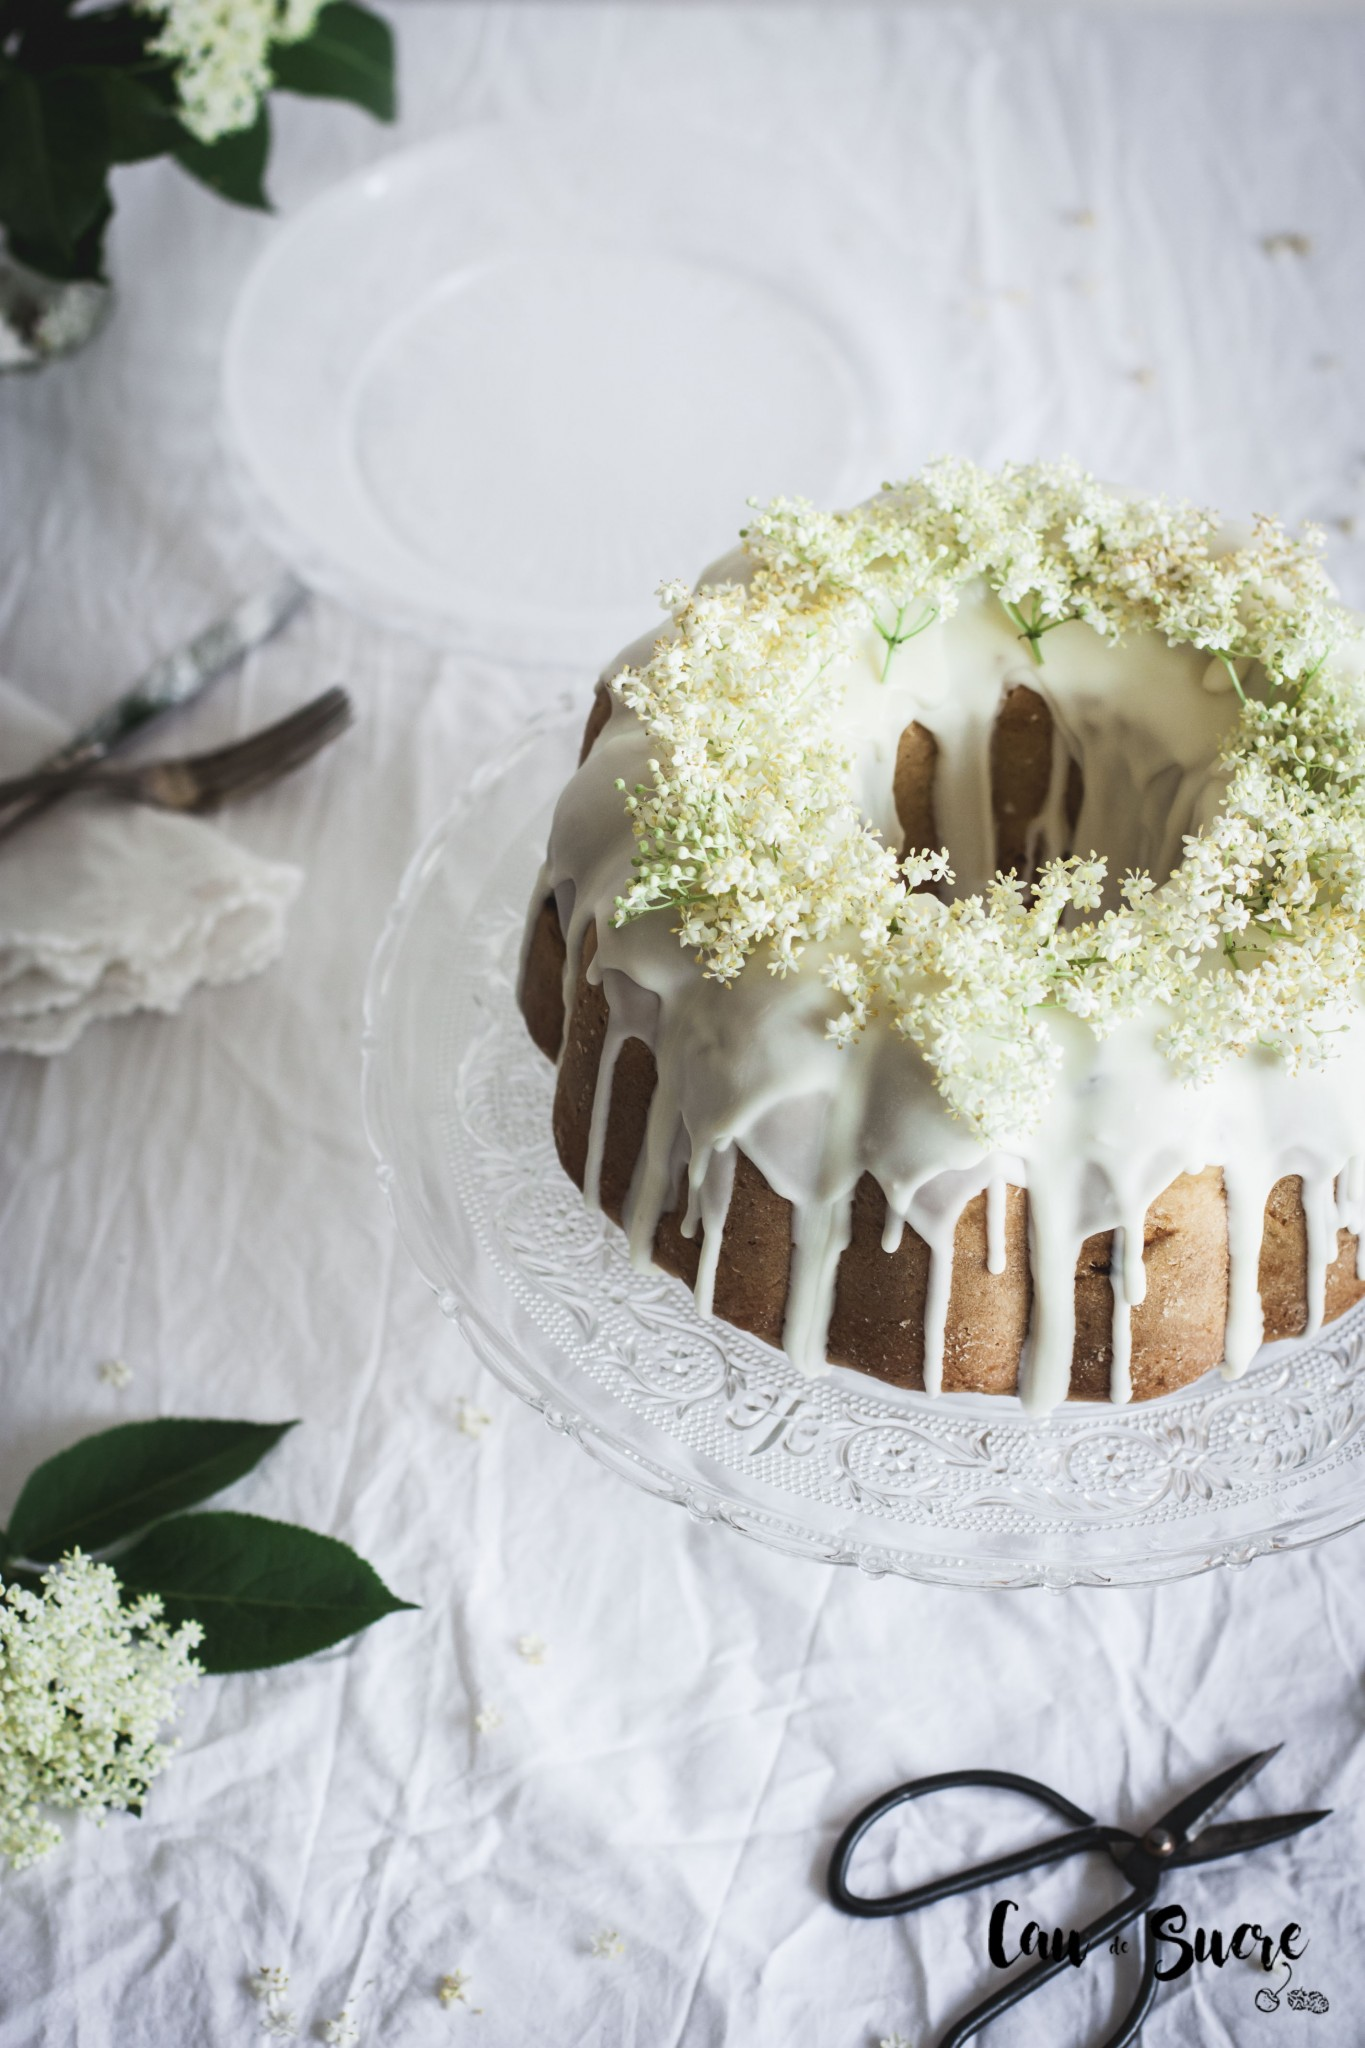 rhubarb_eldelflower_bundtcake-14